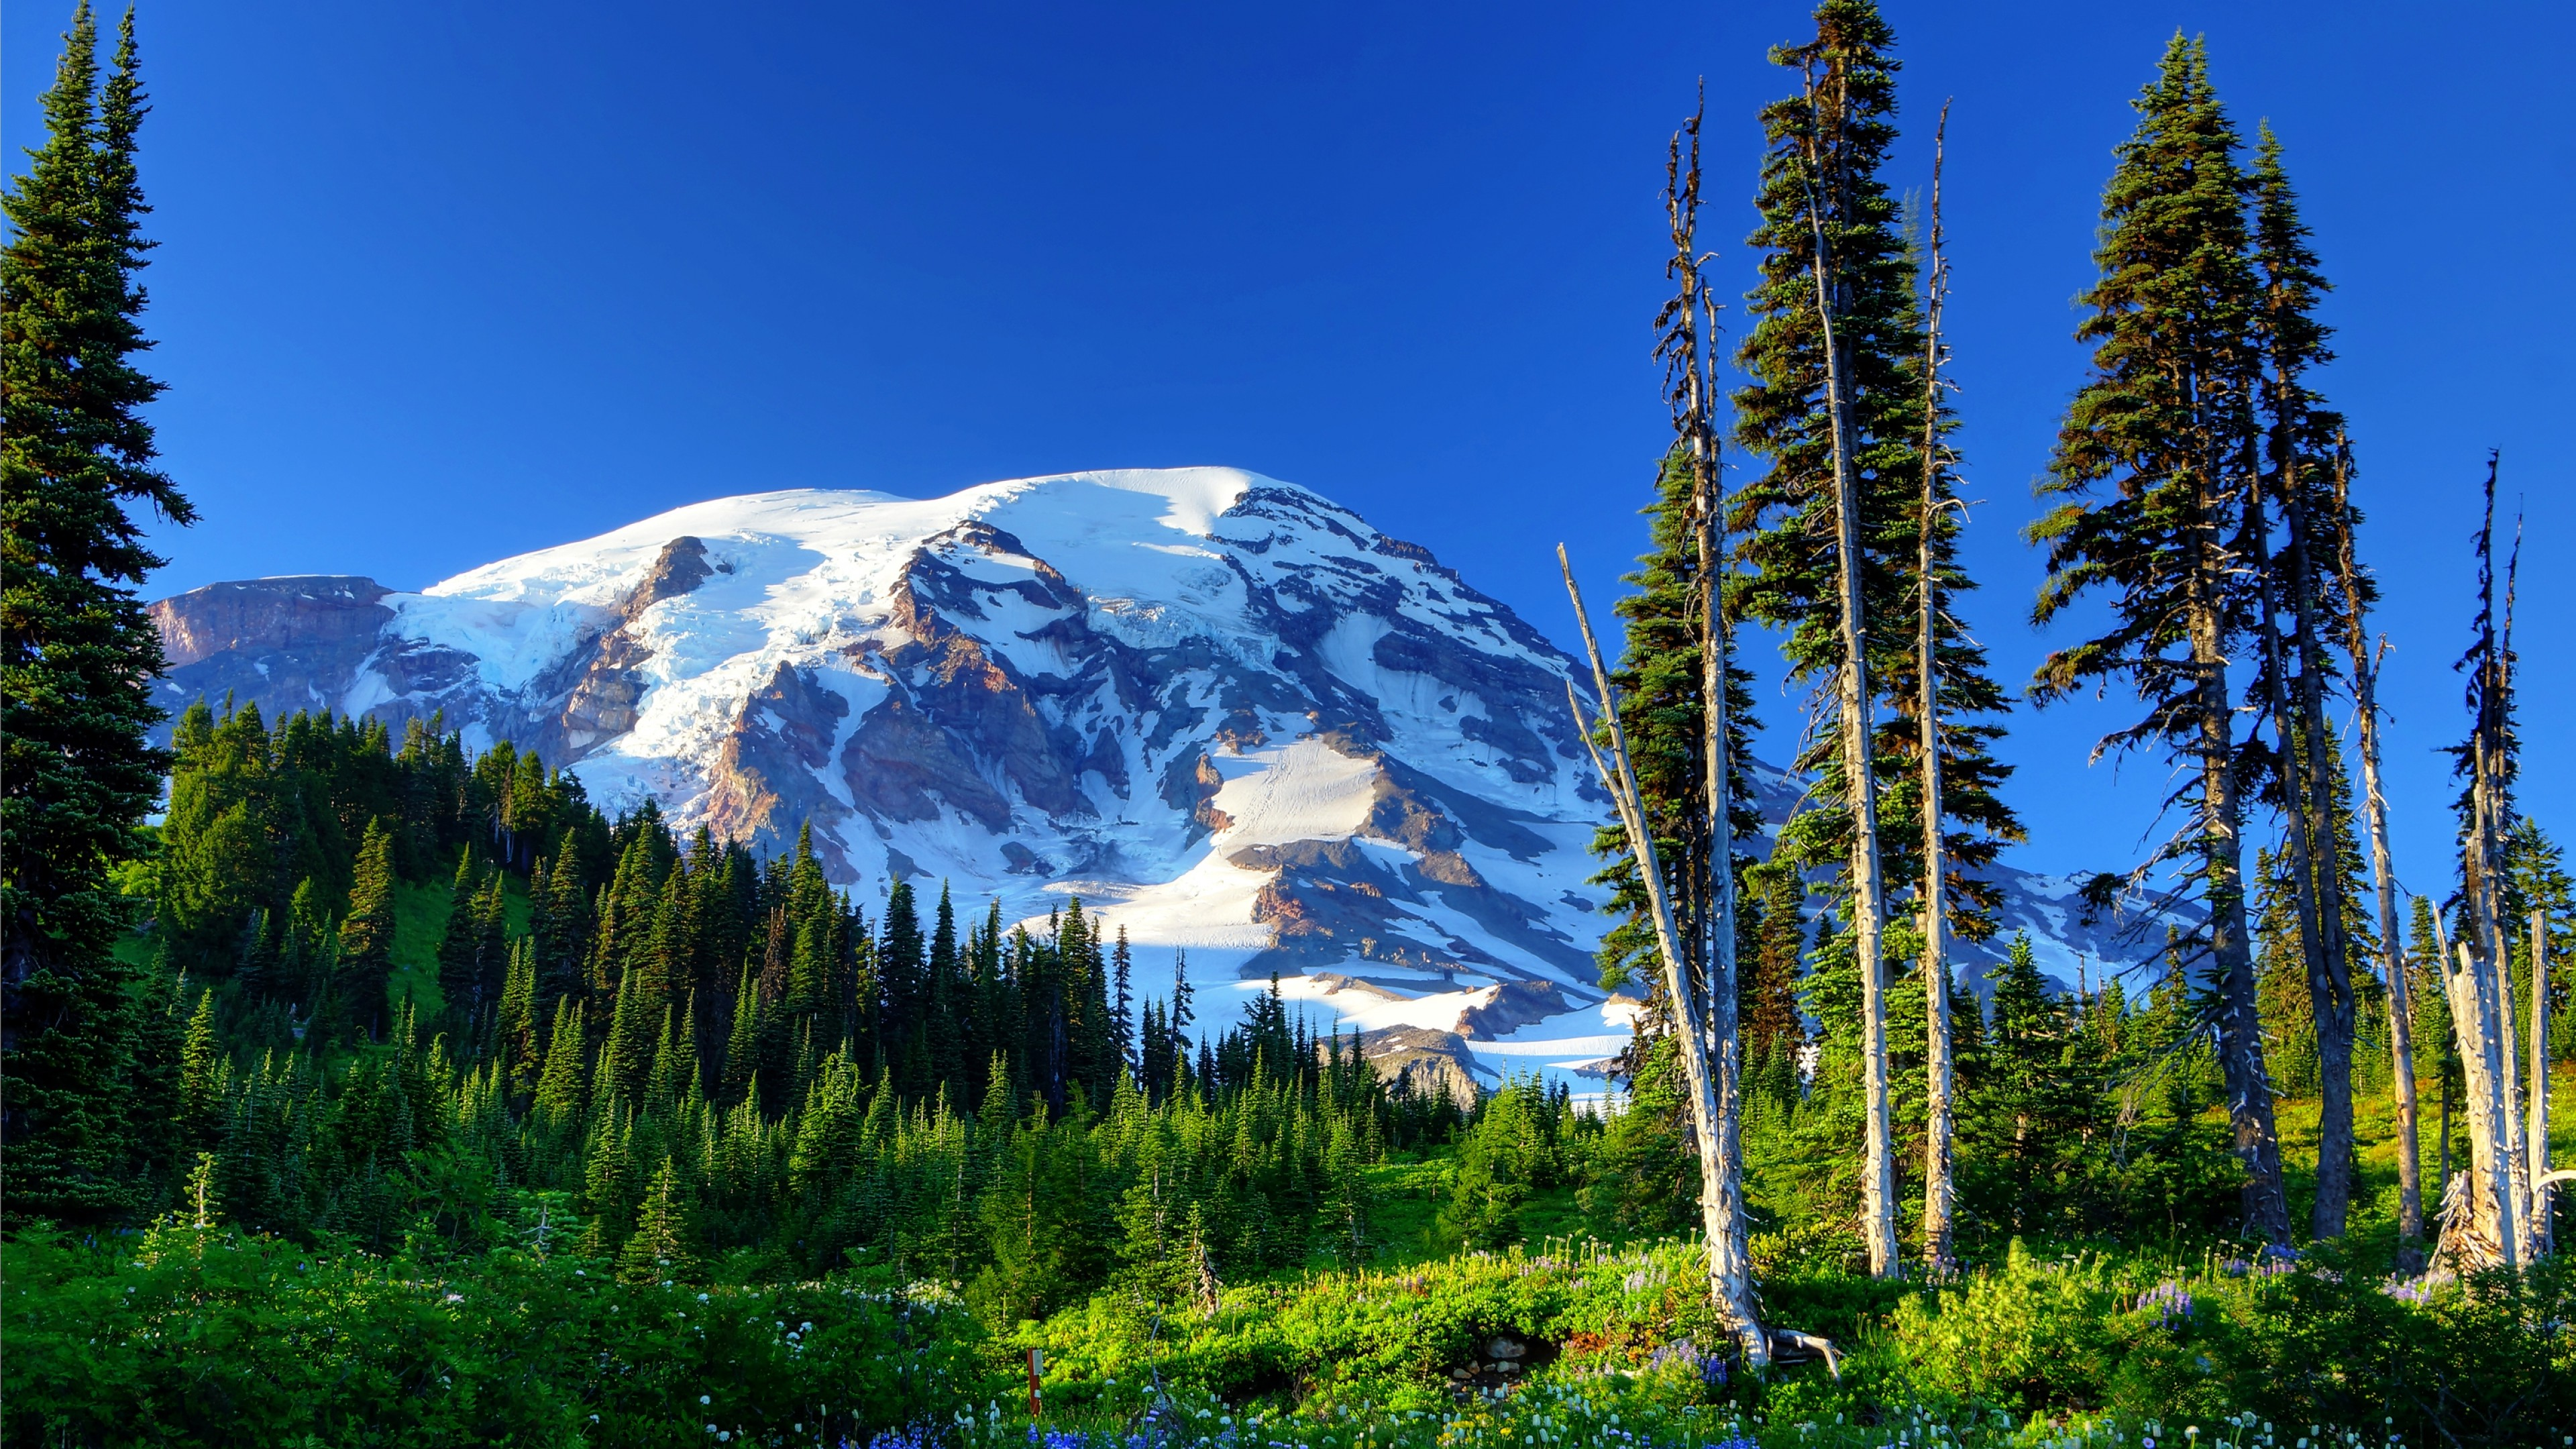 3840x2160 Mount rainier usa mountains snow trees grass flowers slope